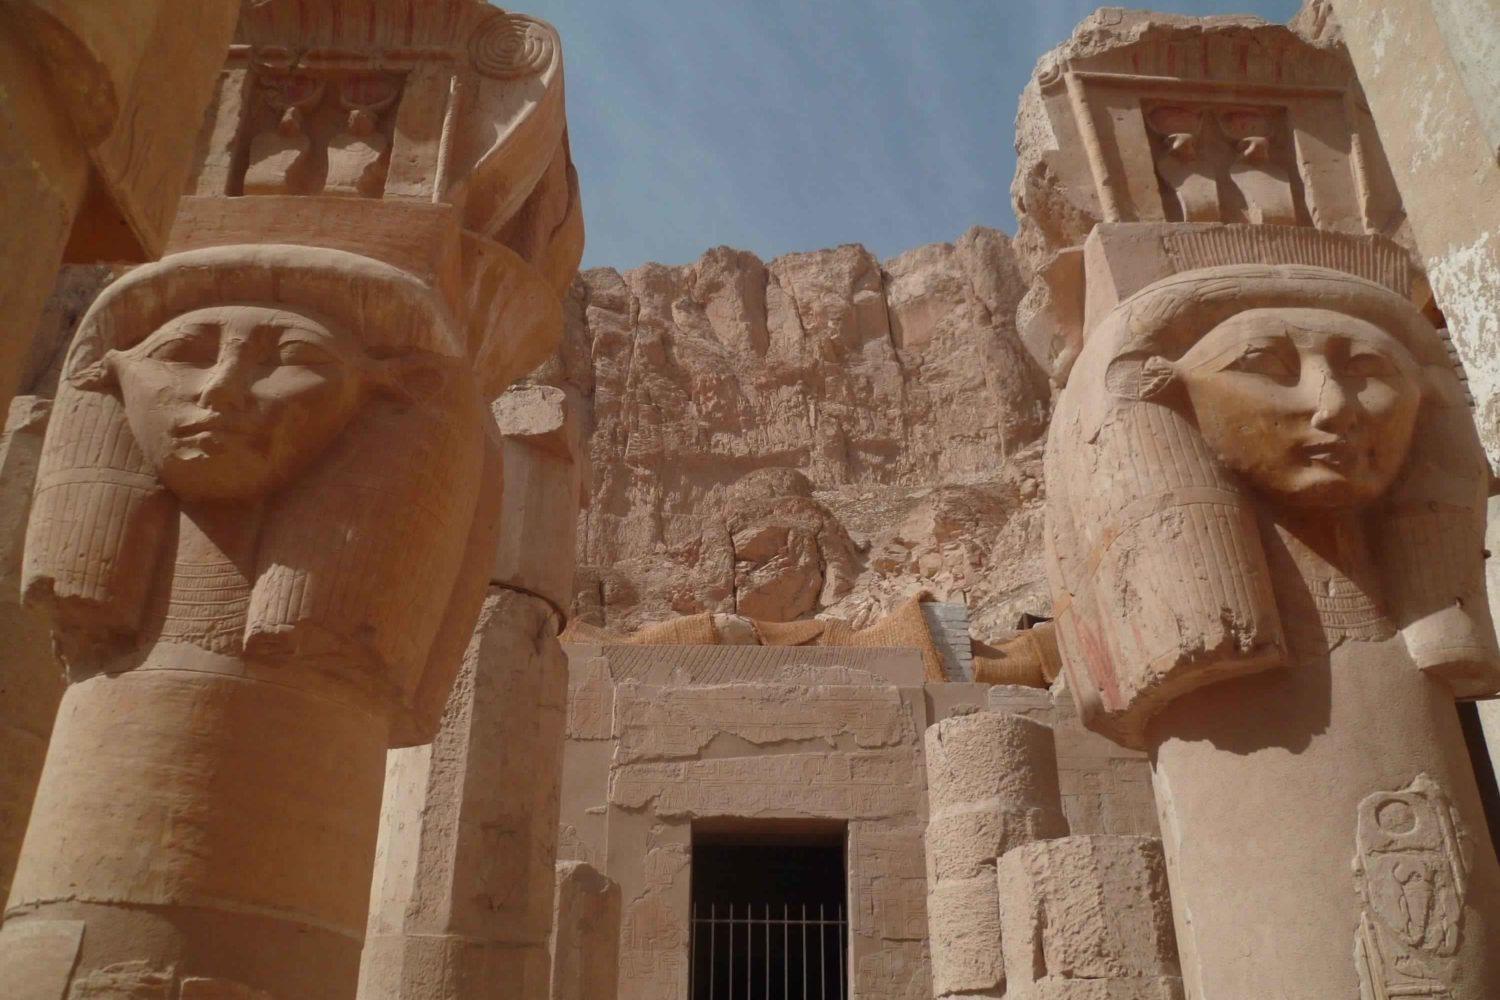 bst trip to egypt and temples of egypt photos